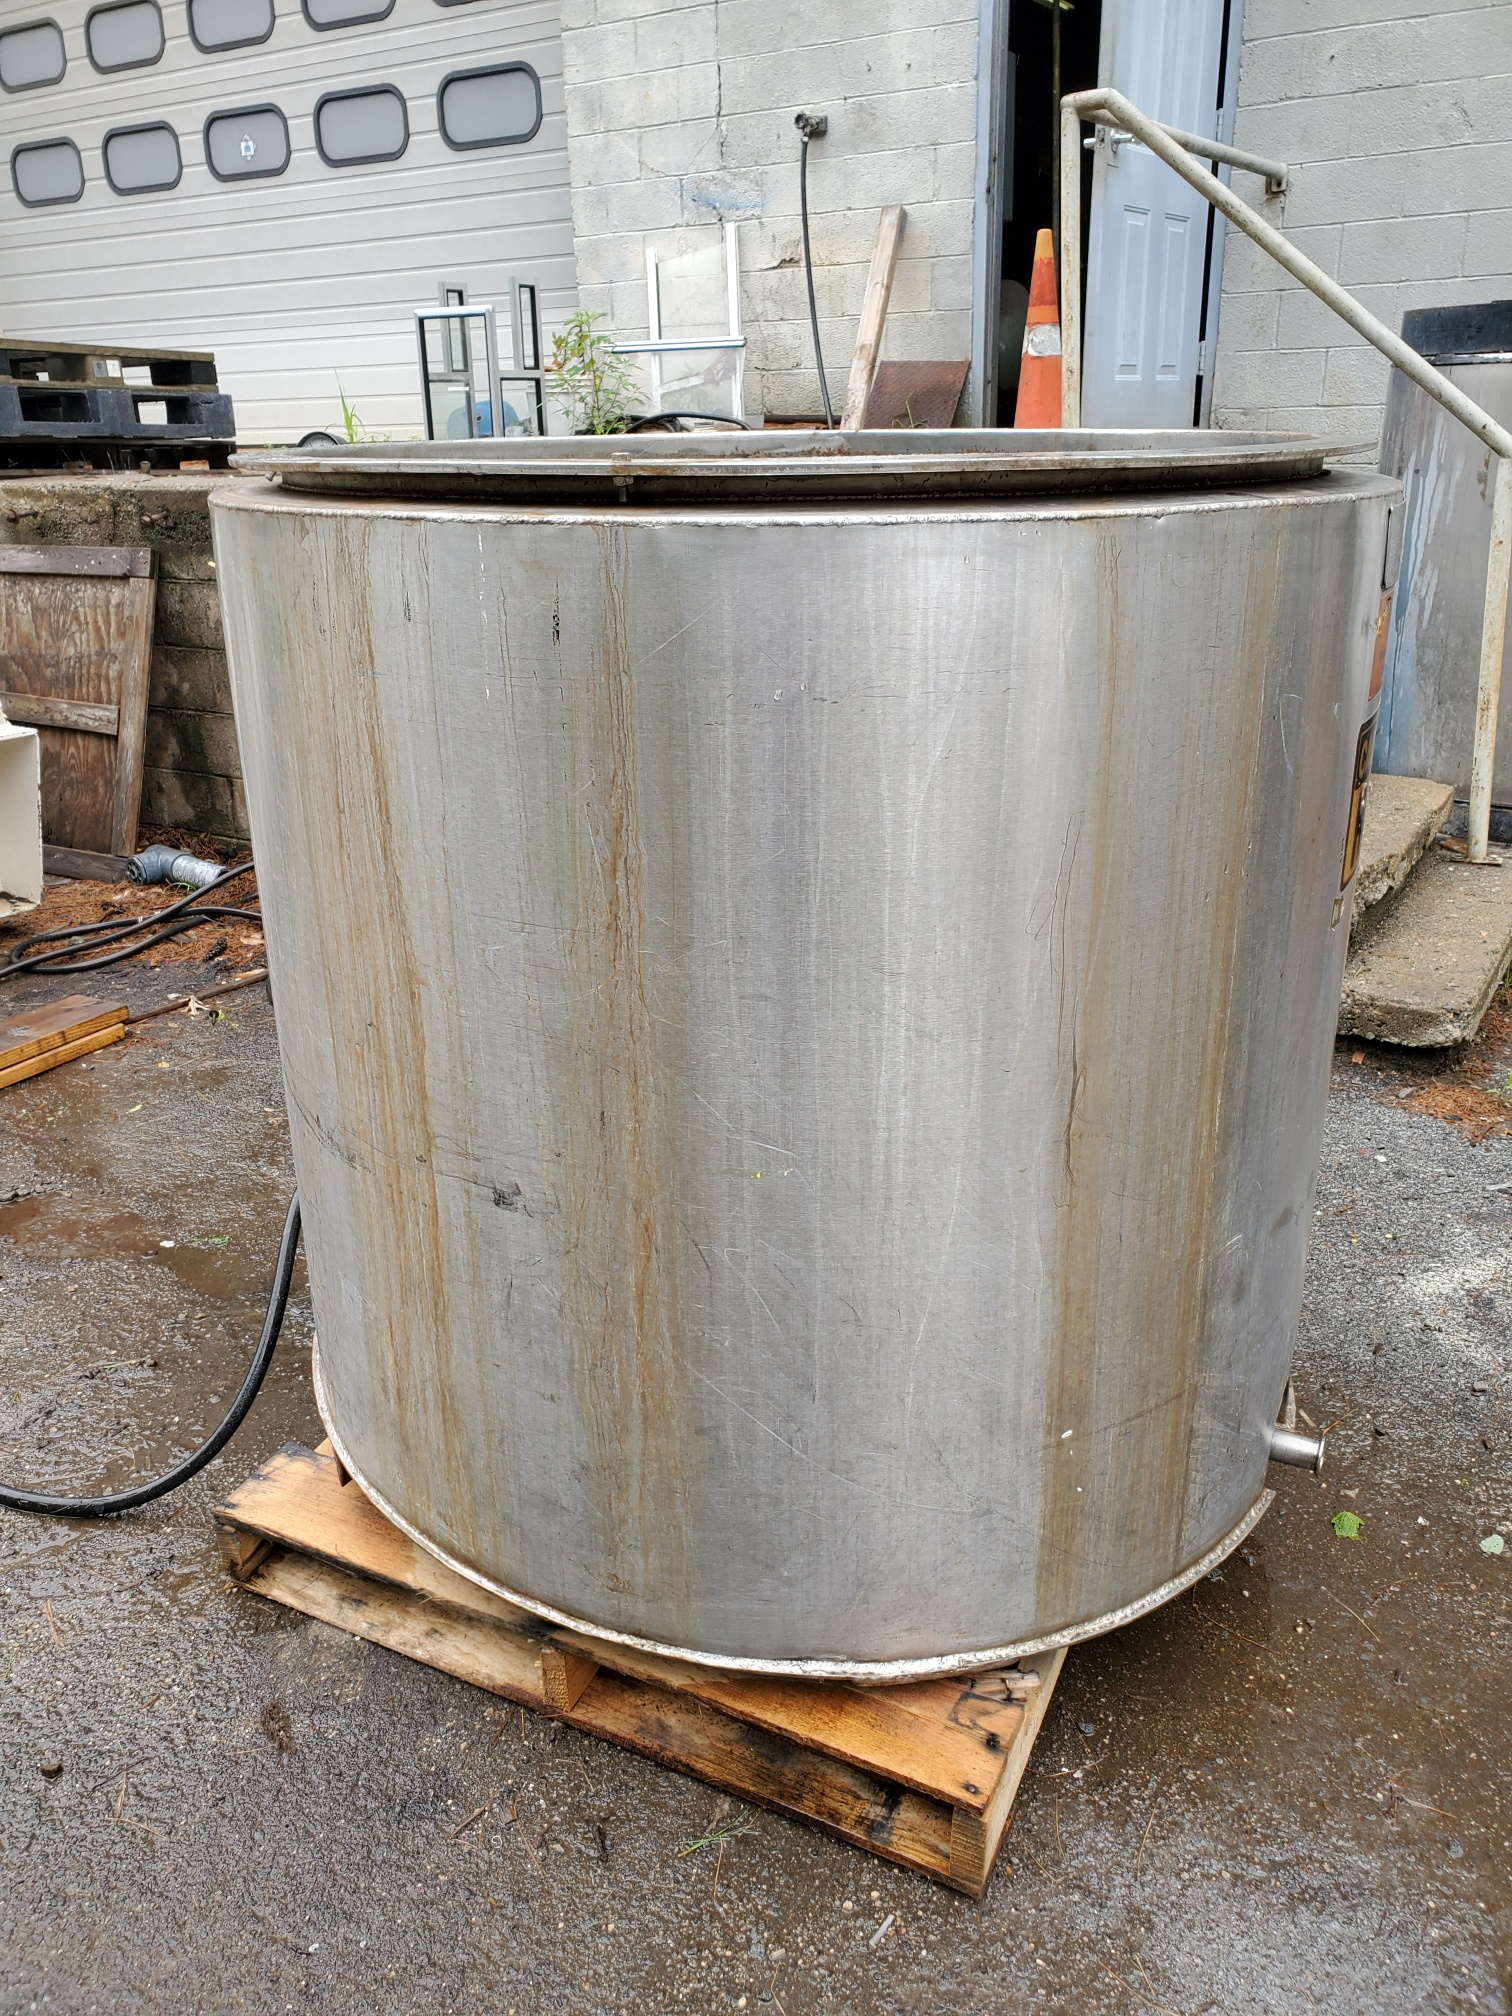 300 Gallon Vertical Jacketed Tank, Type 316 Sanitary Stainless Steel